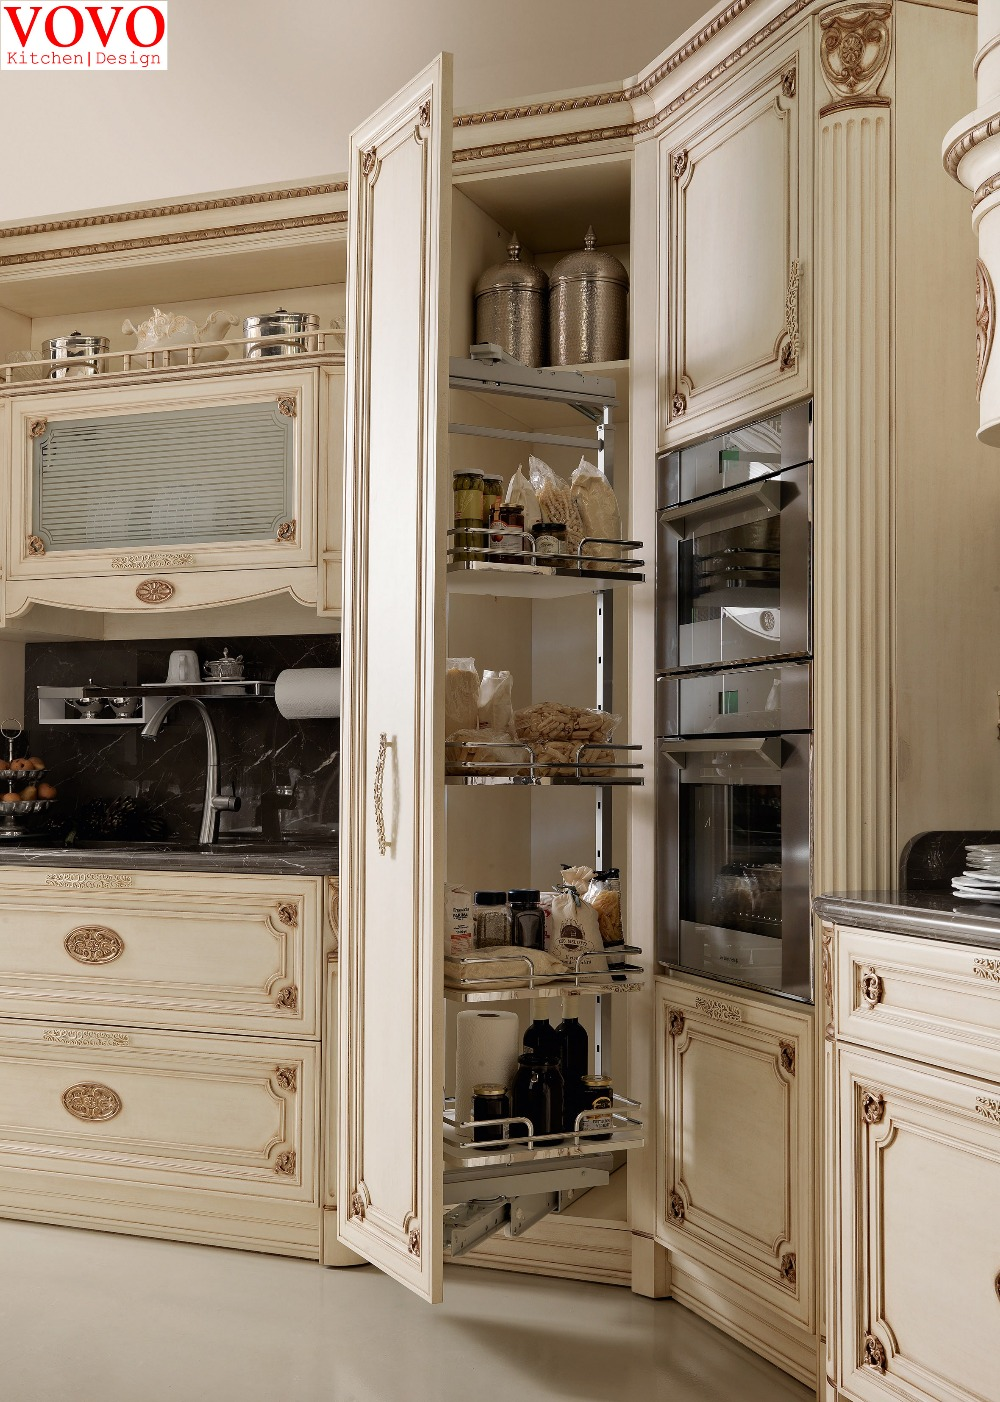 Popular Cabinets Designs KitchenBuy Cheap Cabinets Designs